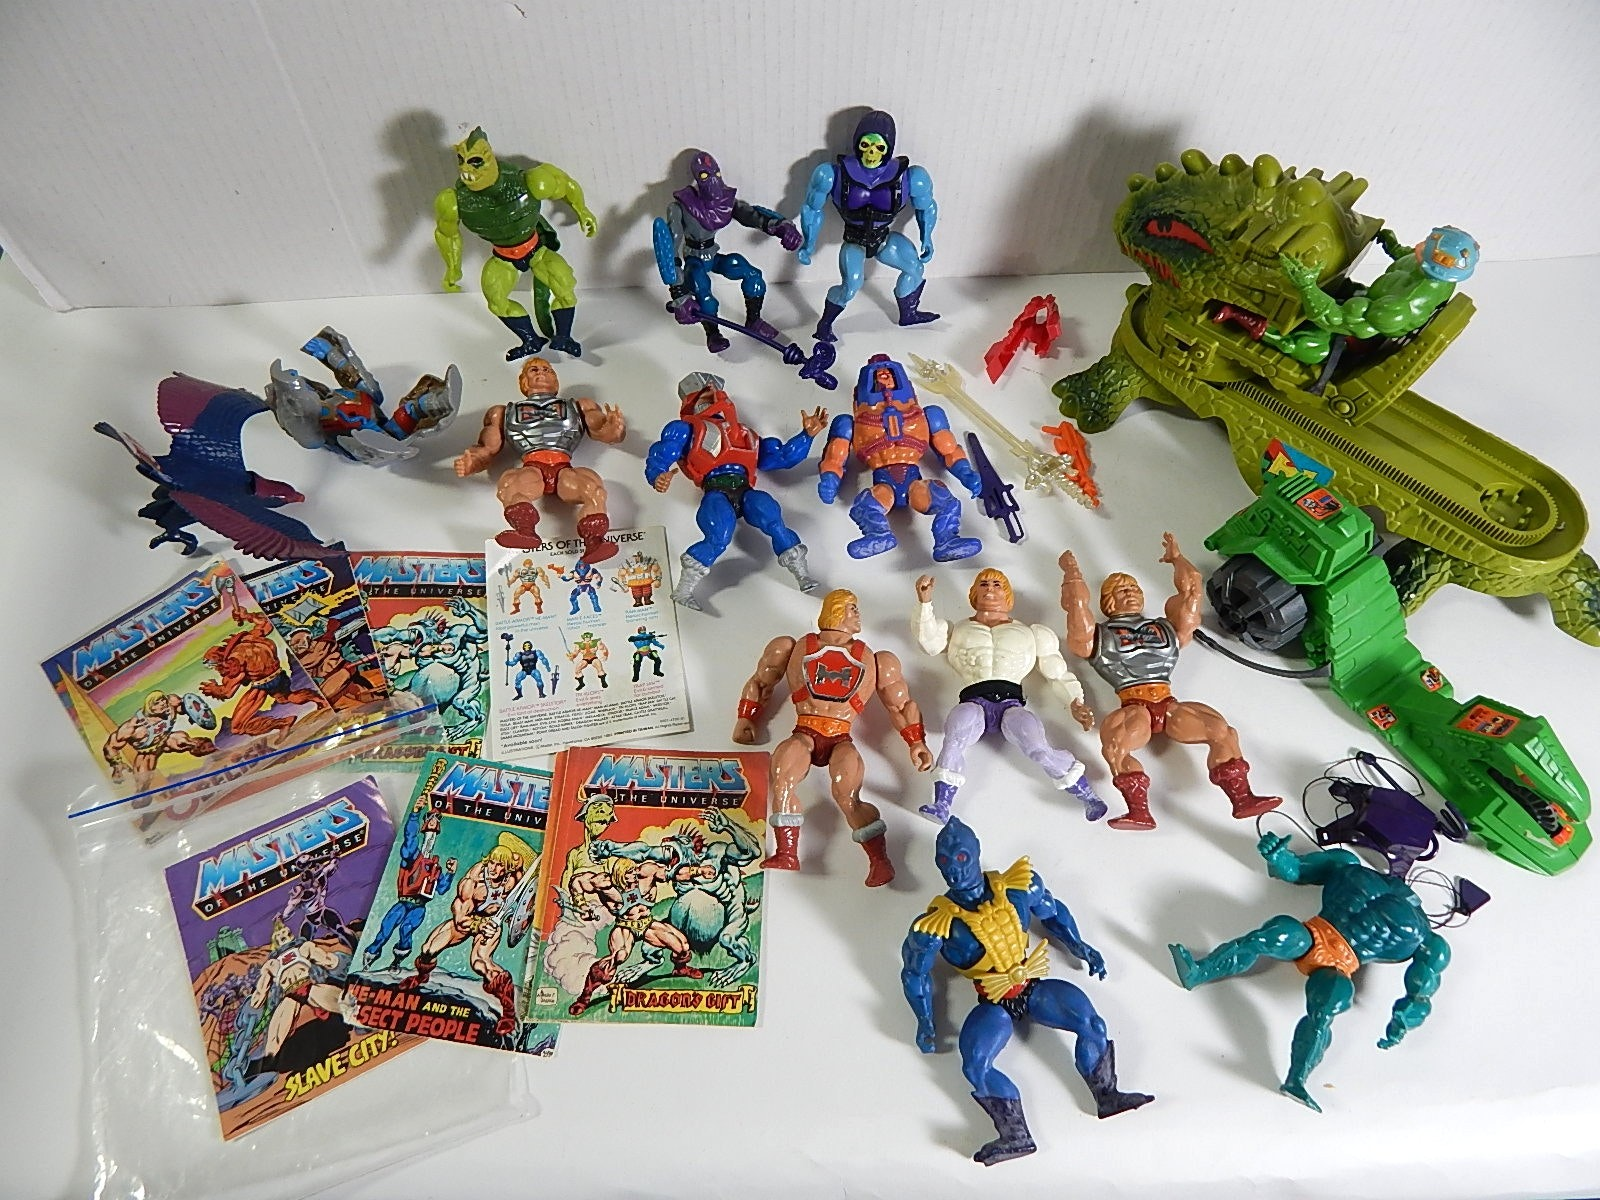 Vintage 1980s Masters of the Universe He-Man Figures